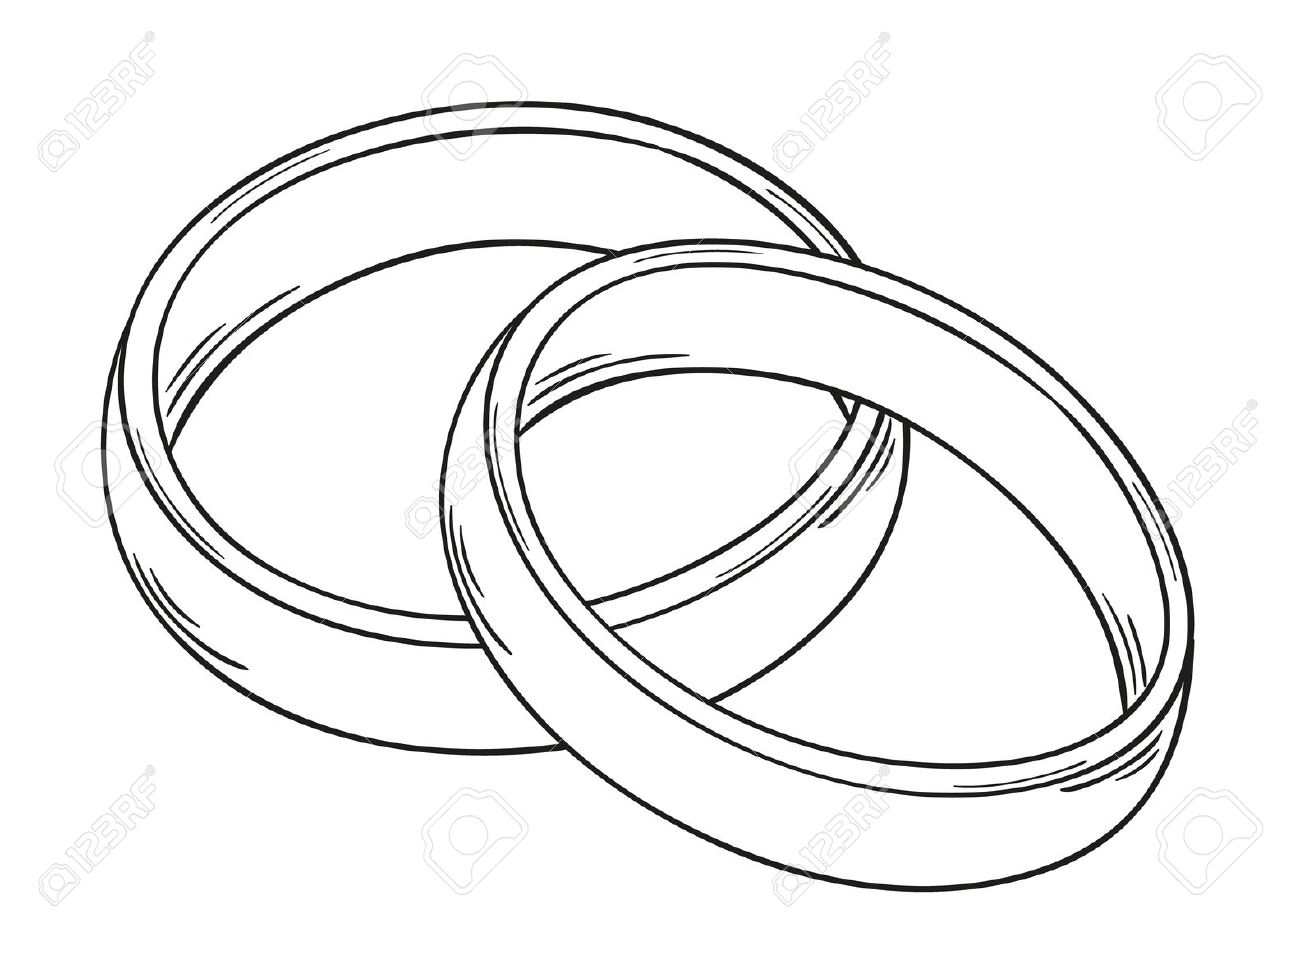 1300x973 Wedding Ring Drawing Wedding Rings How To Draw A Cartoon Diamond